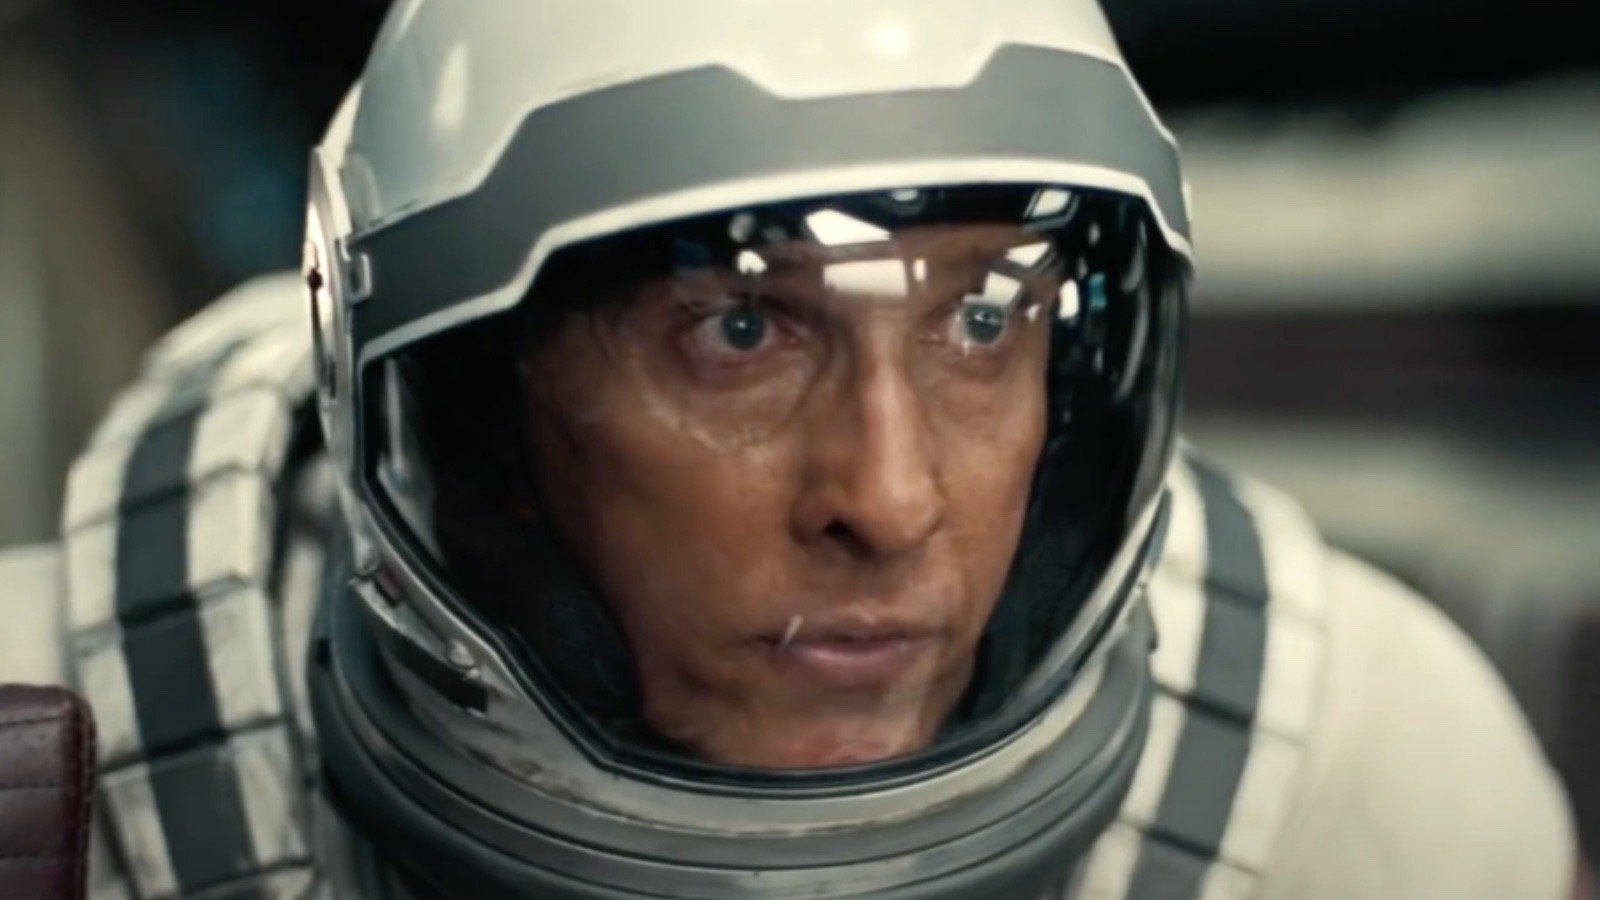 The Event Horizon Reference You Never Noticed In Interstellar